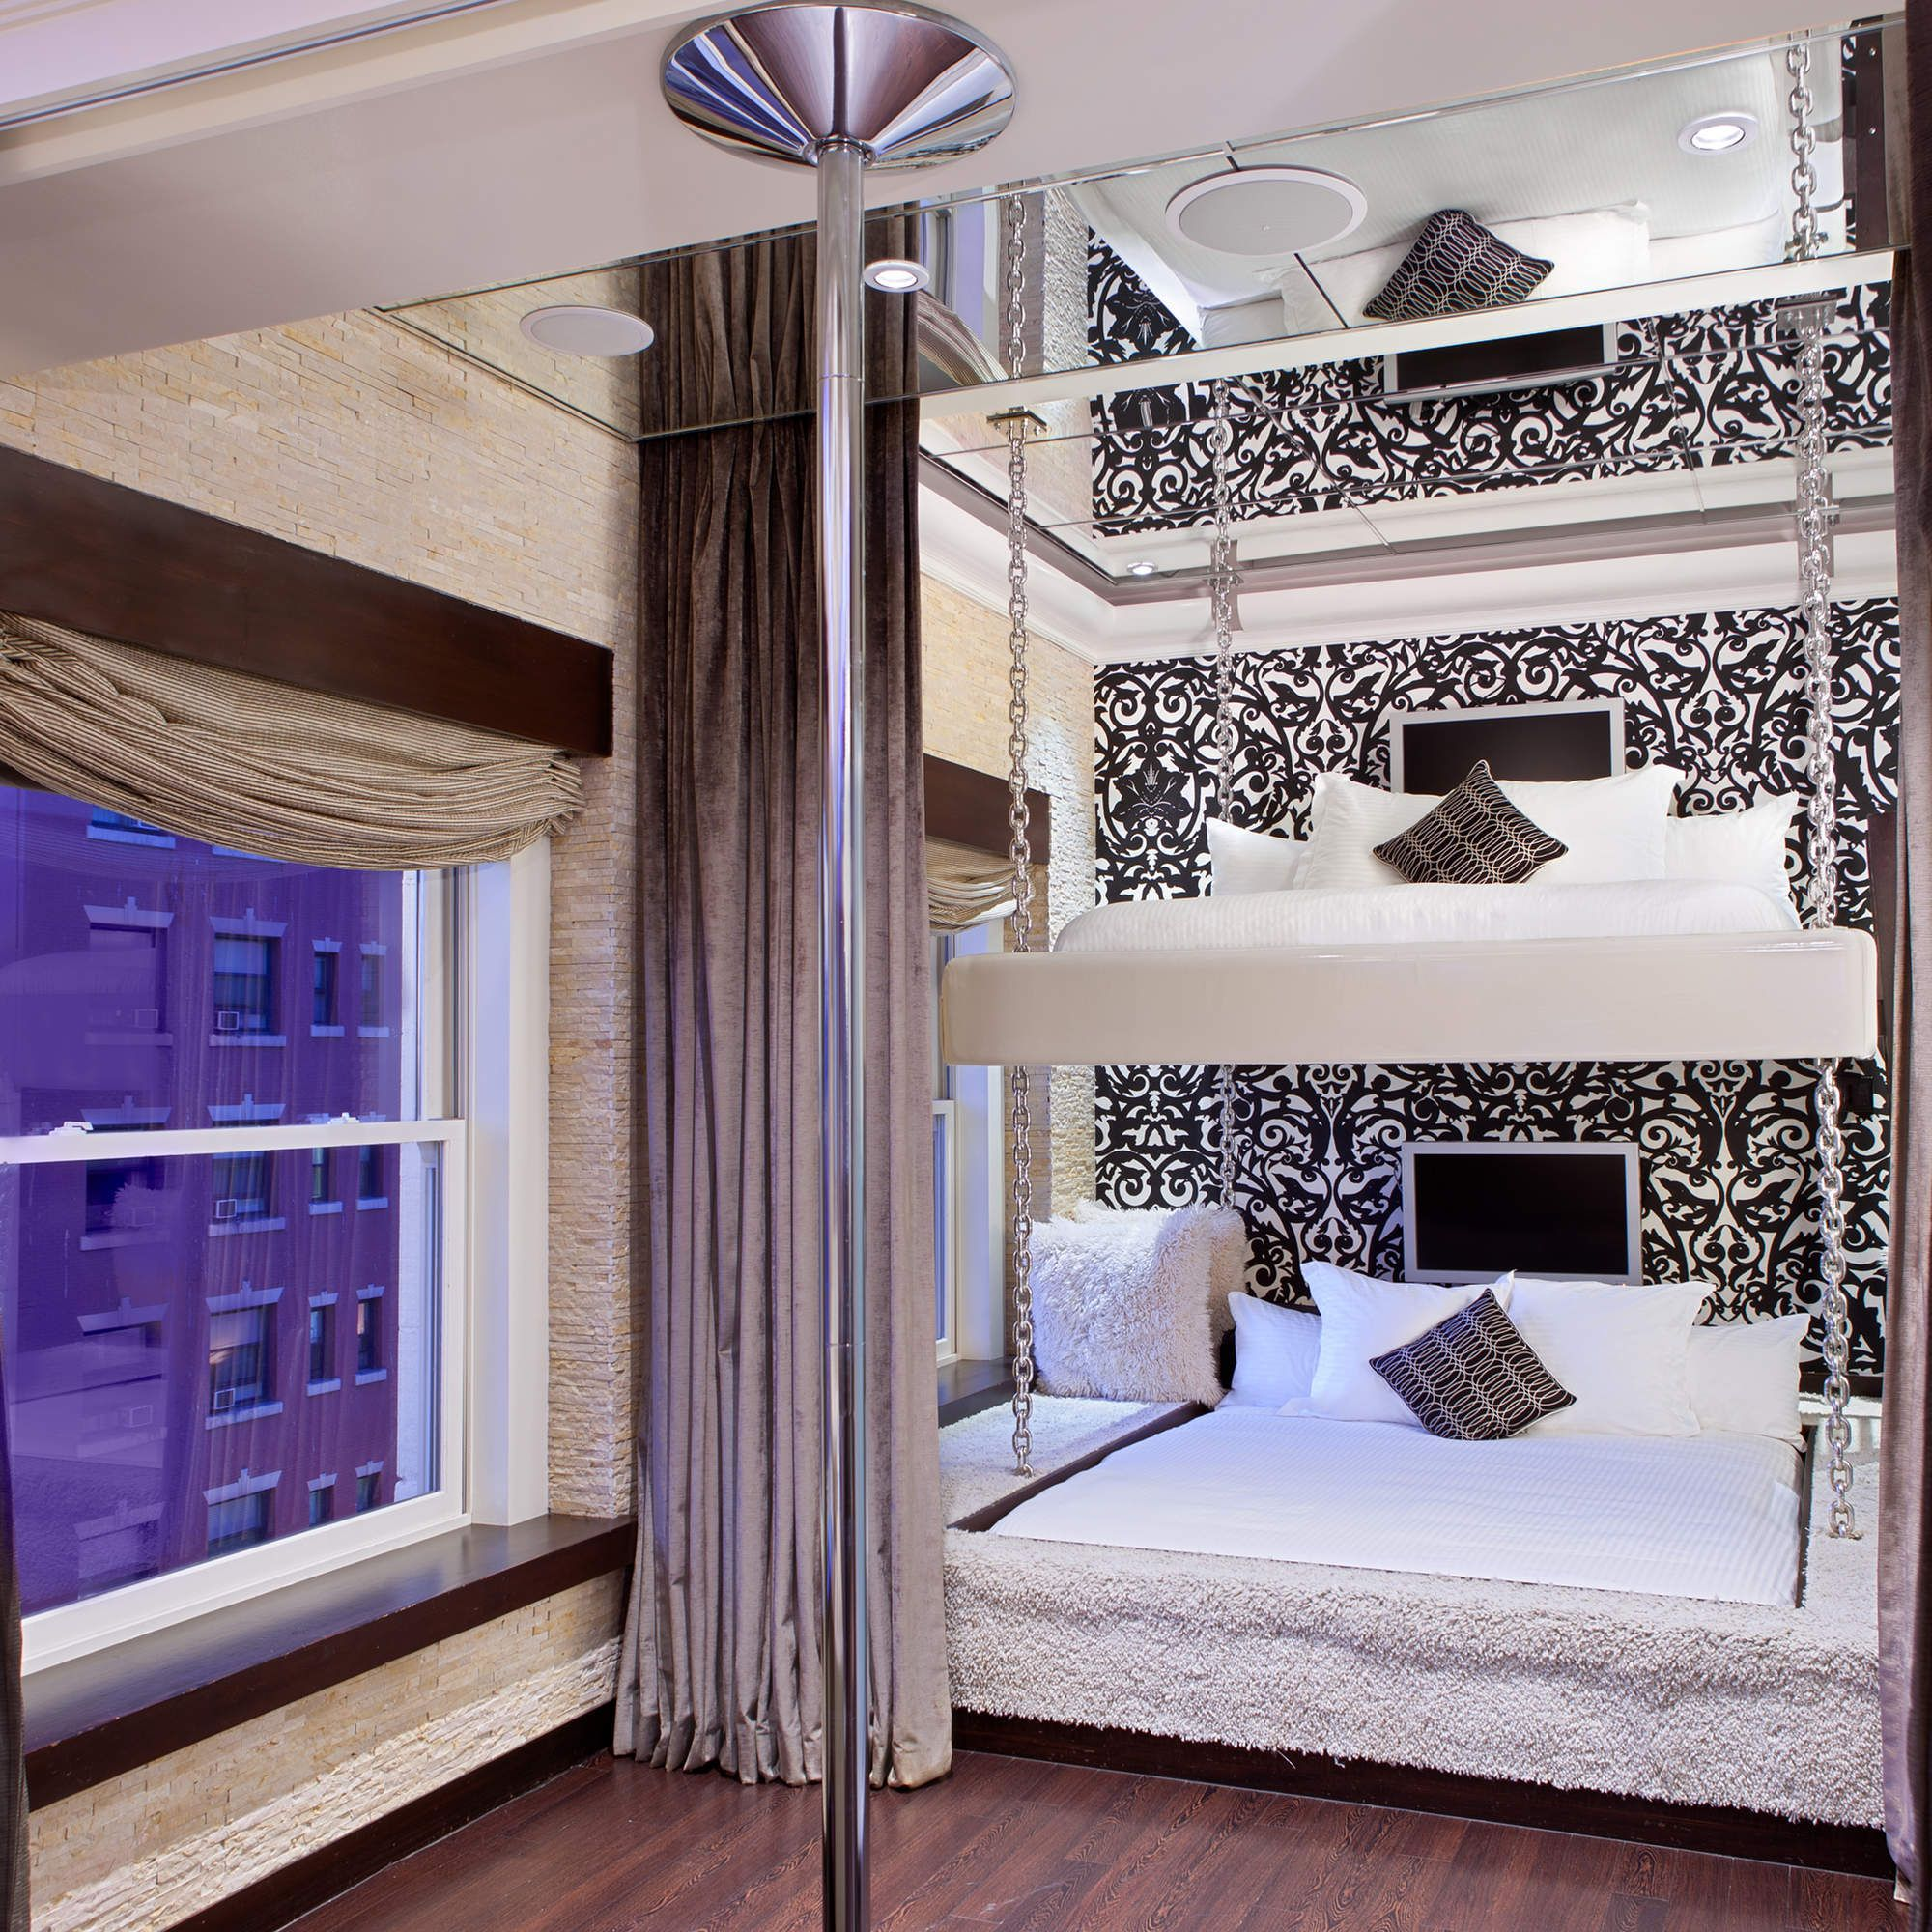 8 Of America S Kinkiest Hotel Rooms King Size Bunk Bed Themed Hotel Rooms Hotels Room